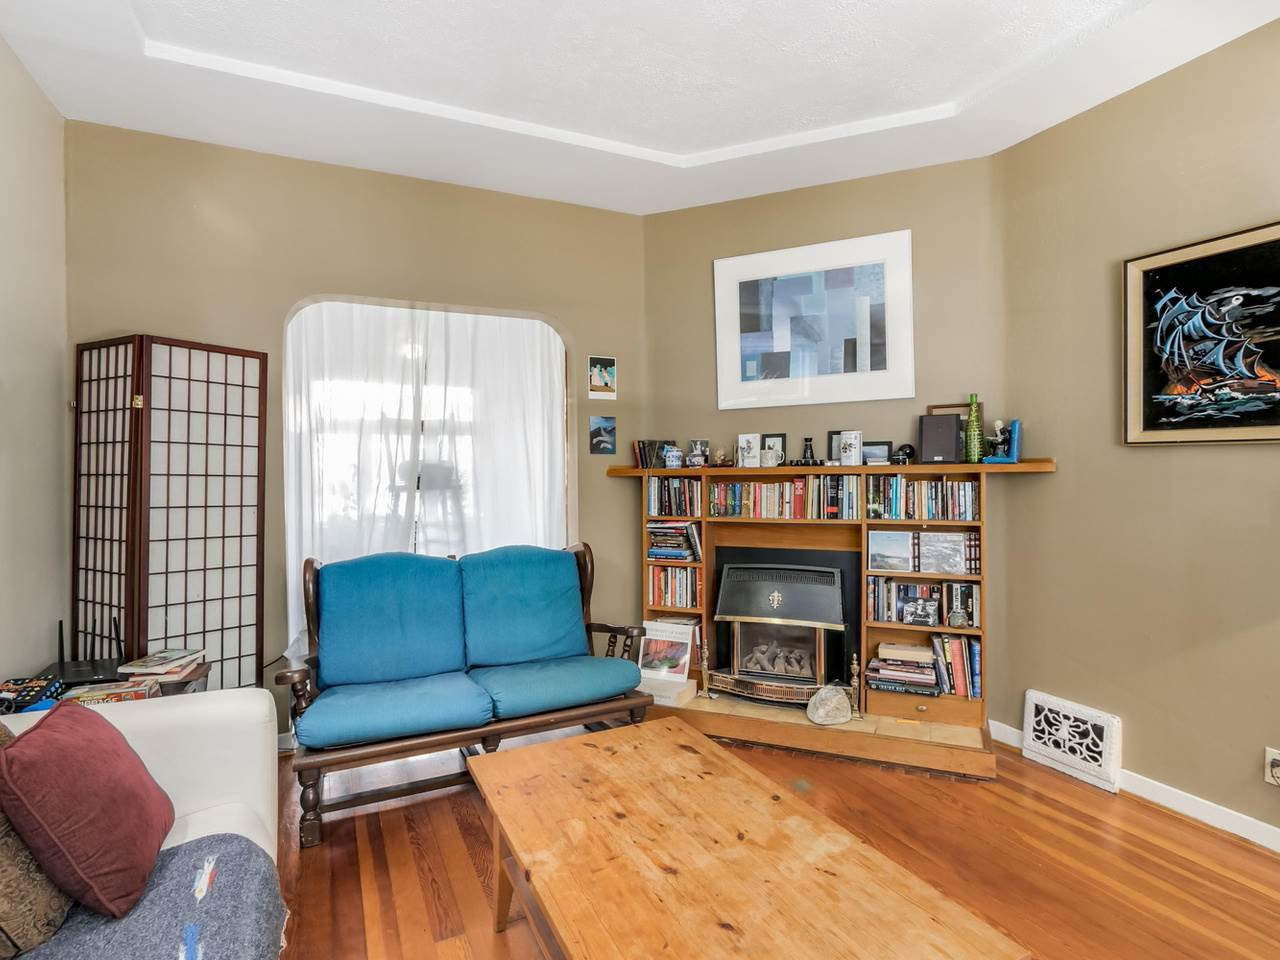 """Photo 5: Photos: 835 E 19TH Avenue in Vancouver: Fraser VE House for sale in """"CEDAR COTTAGE"""" (Vancouver East)  : MLS®# R2071745"""